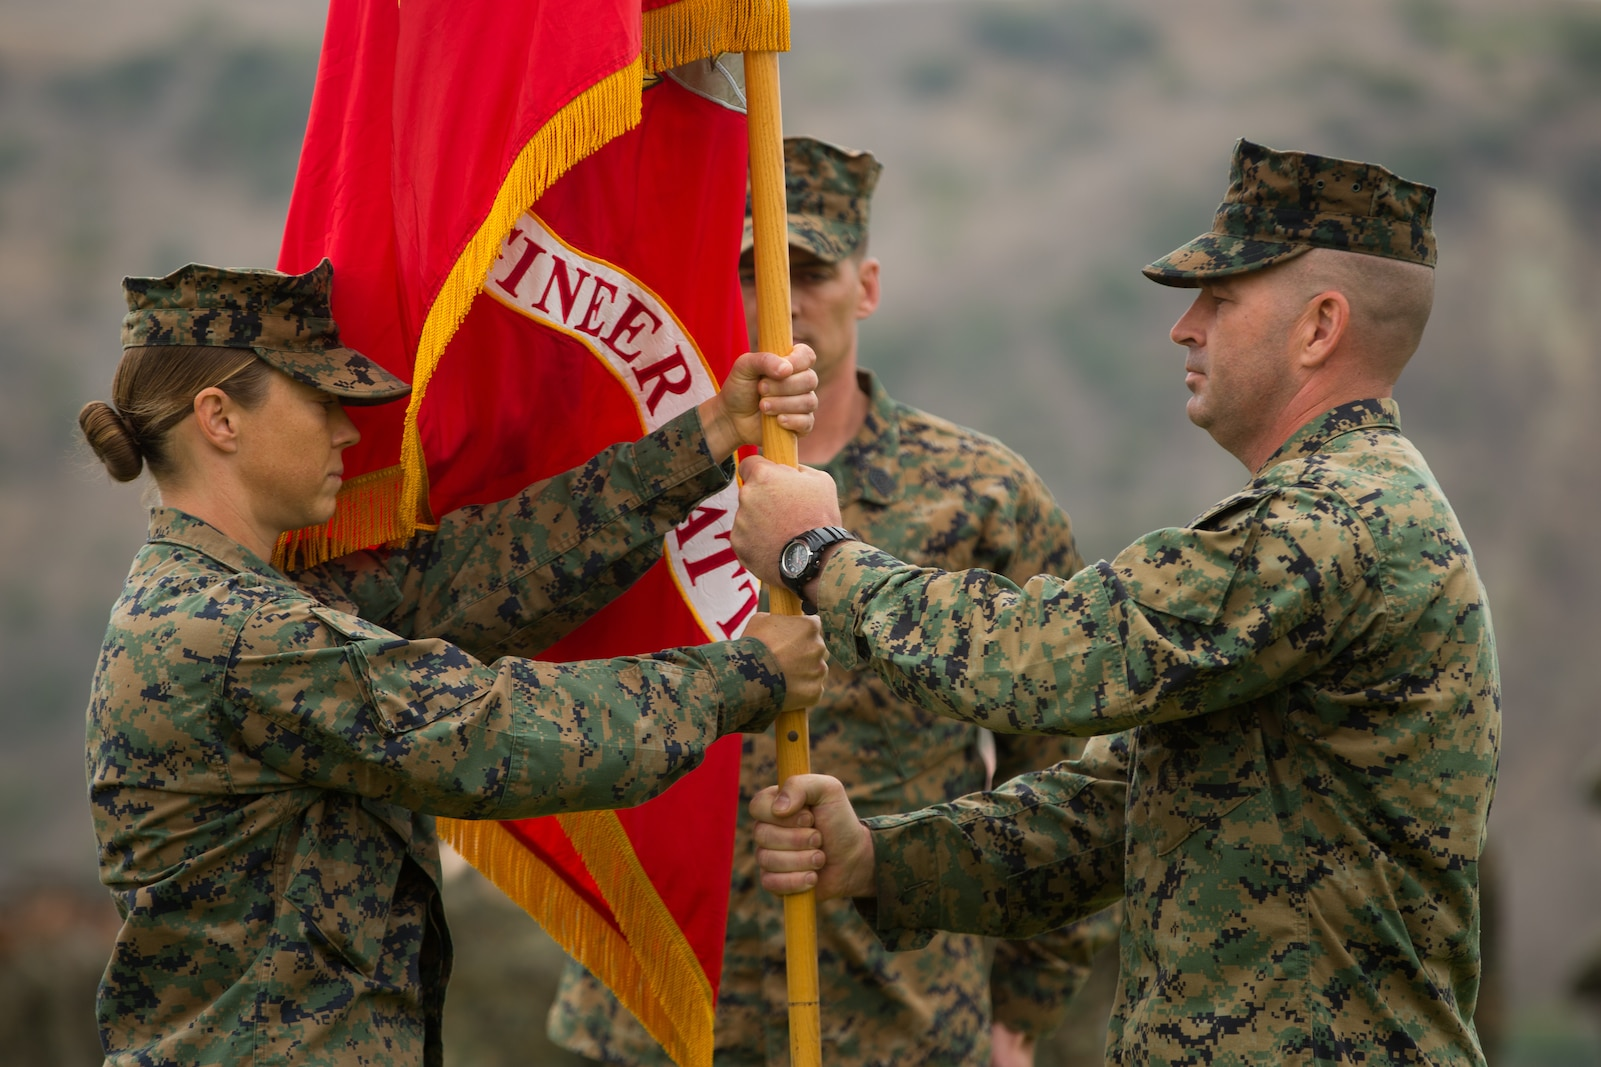 U.S. Marine Corps Lt. Col. Michelle I. Macander, left, incoming commanding officer of 1st Combat Engineer Battalion (CEB), 1st Marine Division, receives the colors from Lt. Col. Christopher M. Haar, offgoing commanding officer of 1st CEB, during a change of command ceremony at Marine Corps Base Camp Pendleton, Calif., June 22, 2018.